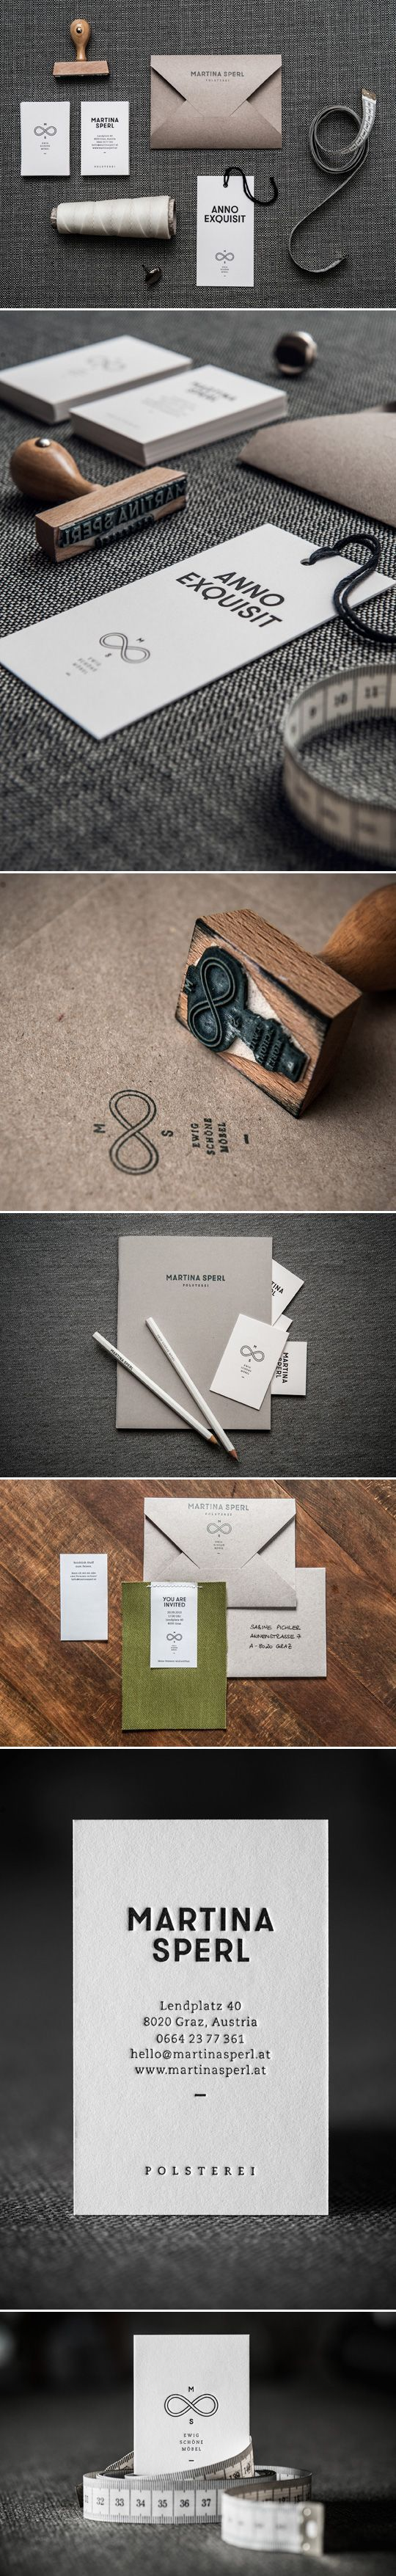 20 Inspiring Stationery Designs / print finish on ww.tobydesigns.com